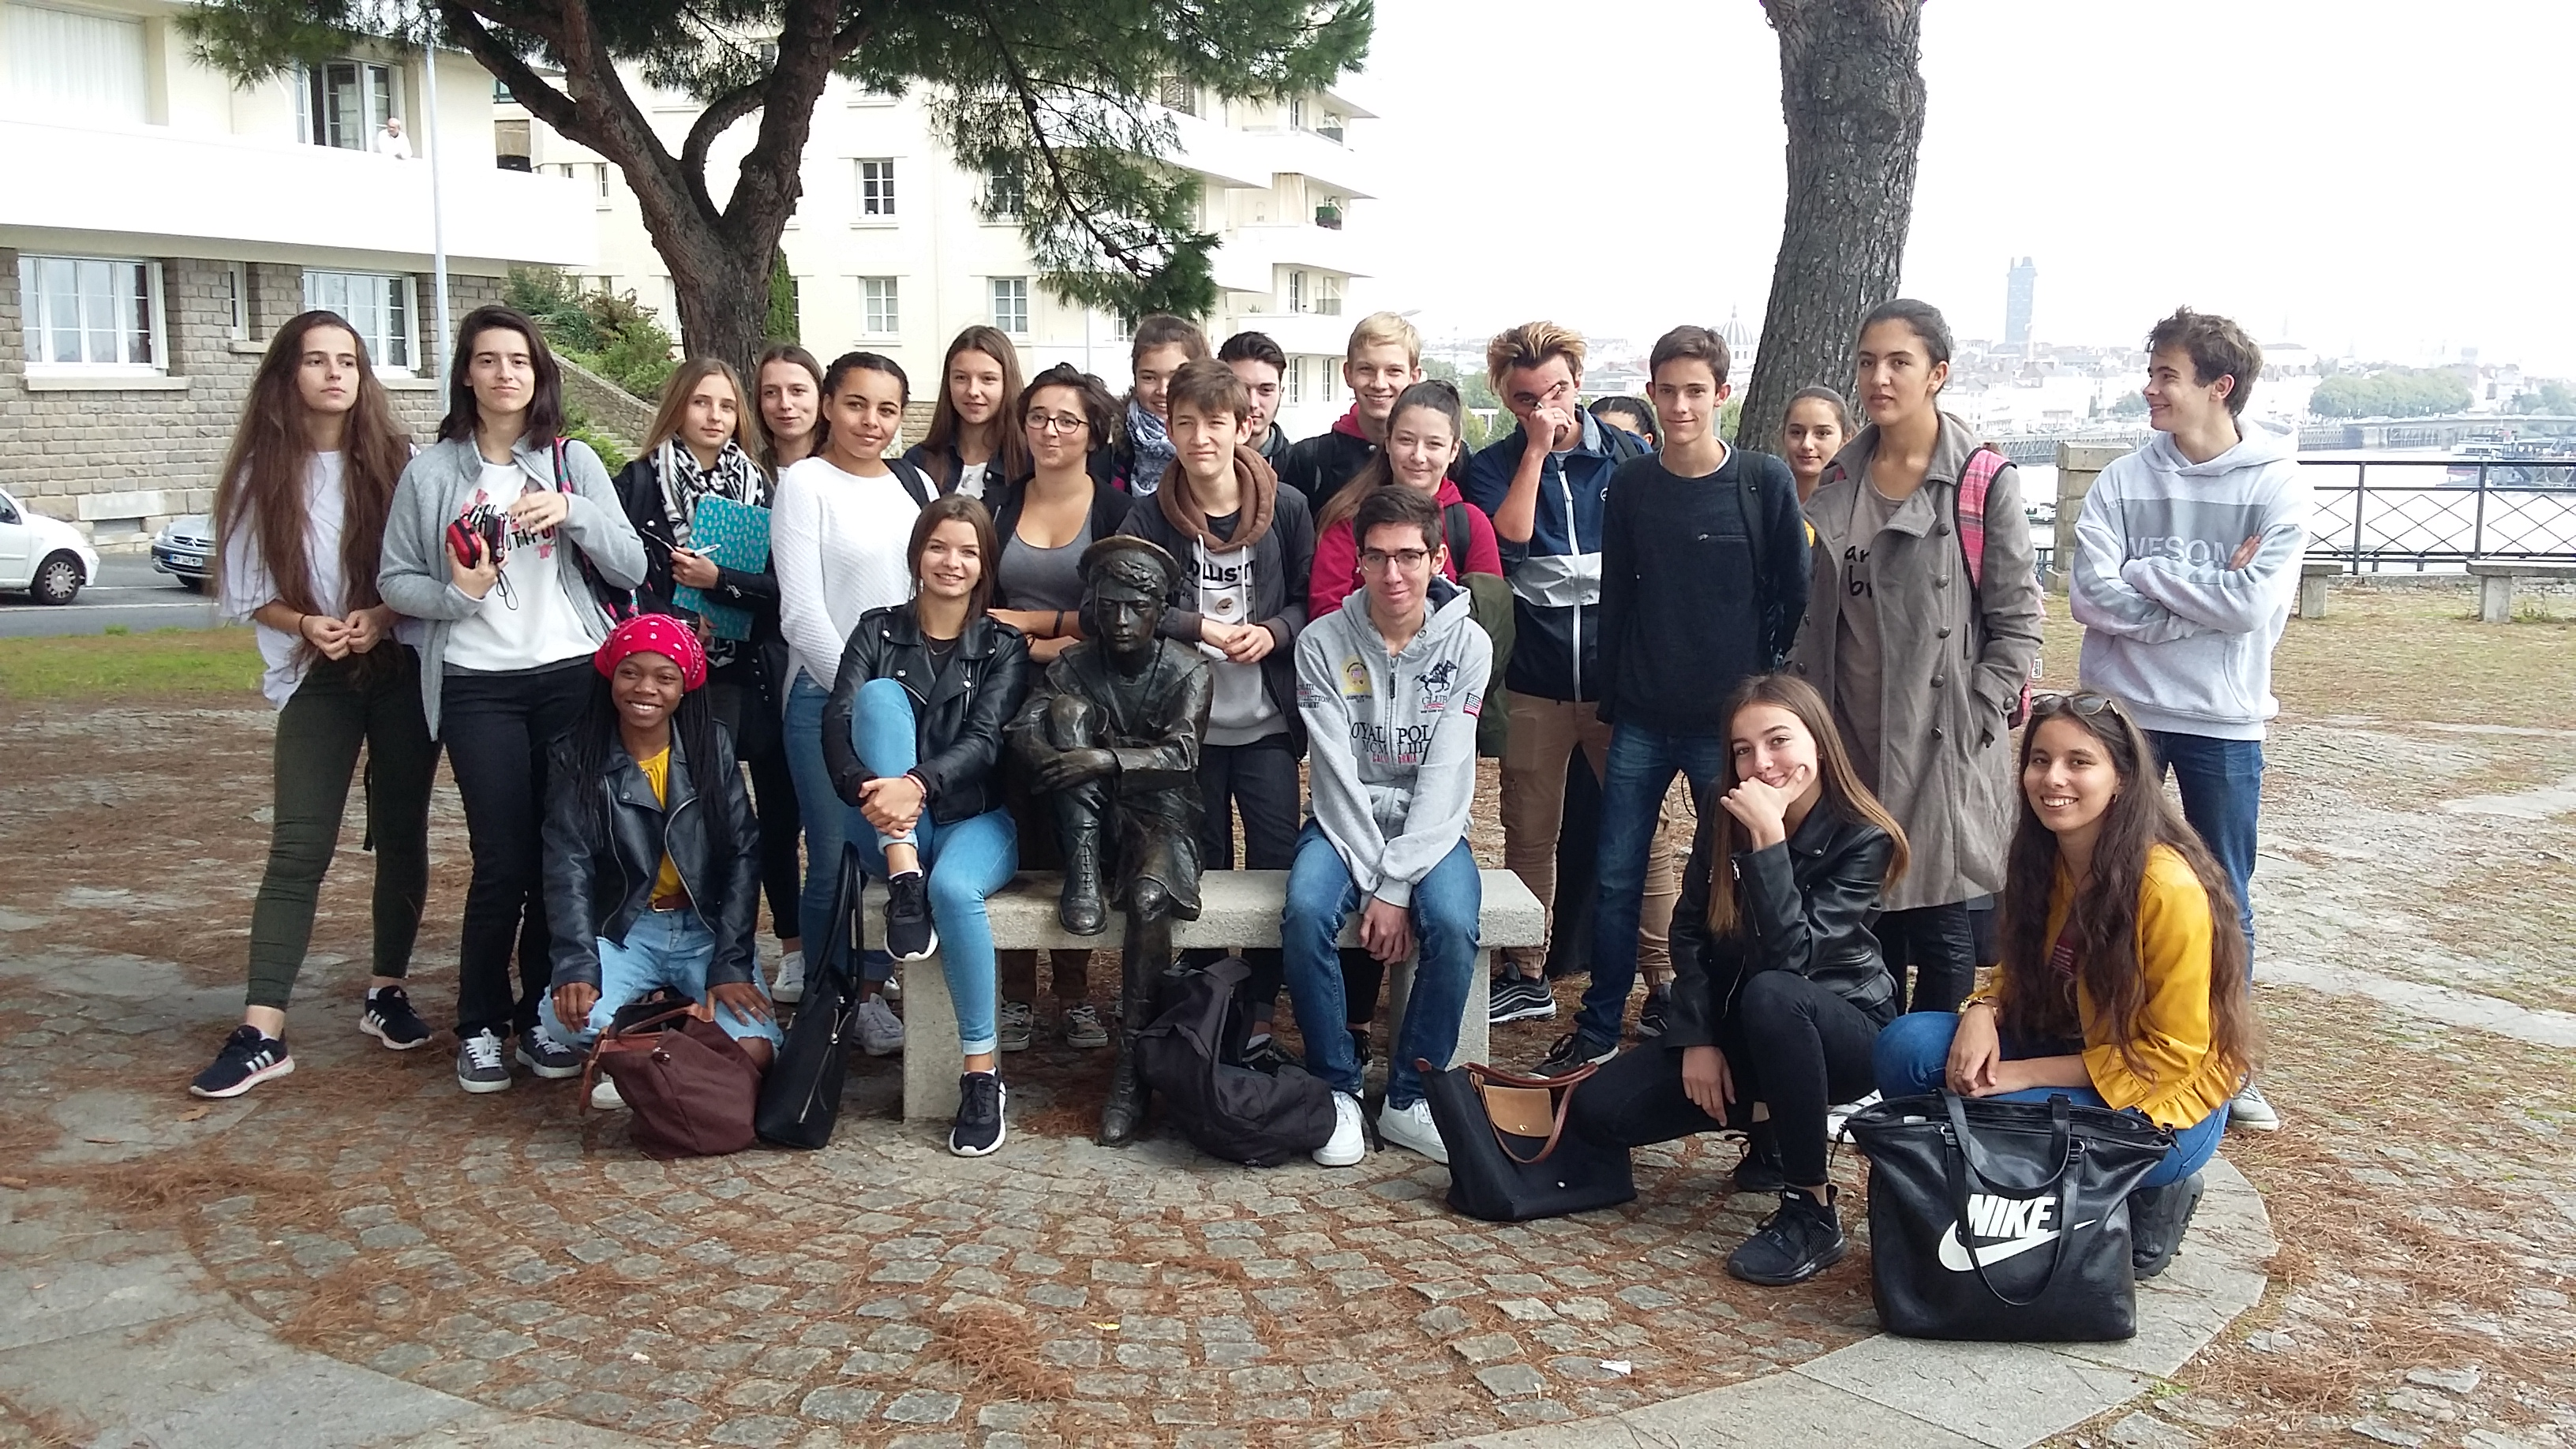 Literature And Society Class Visit To Jules Verne Museum In Nantes